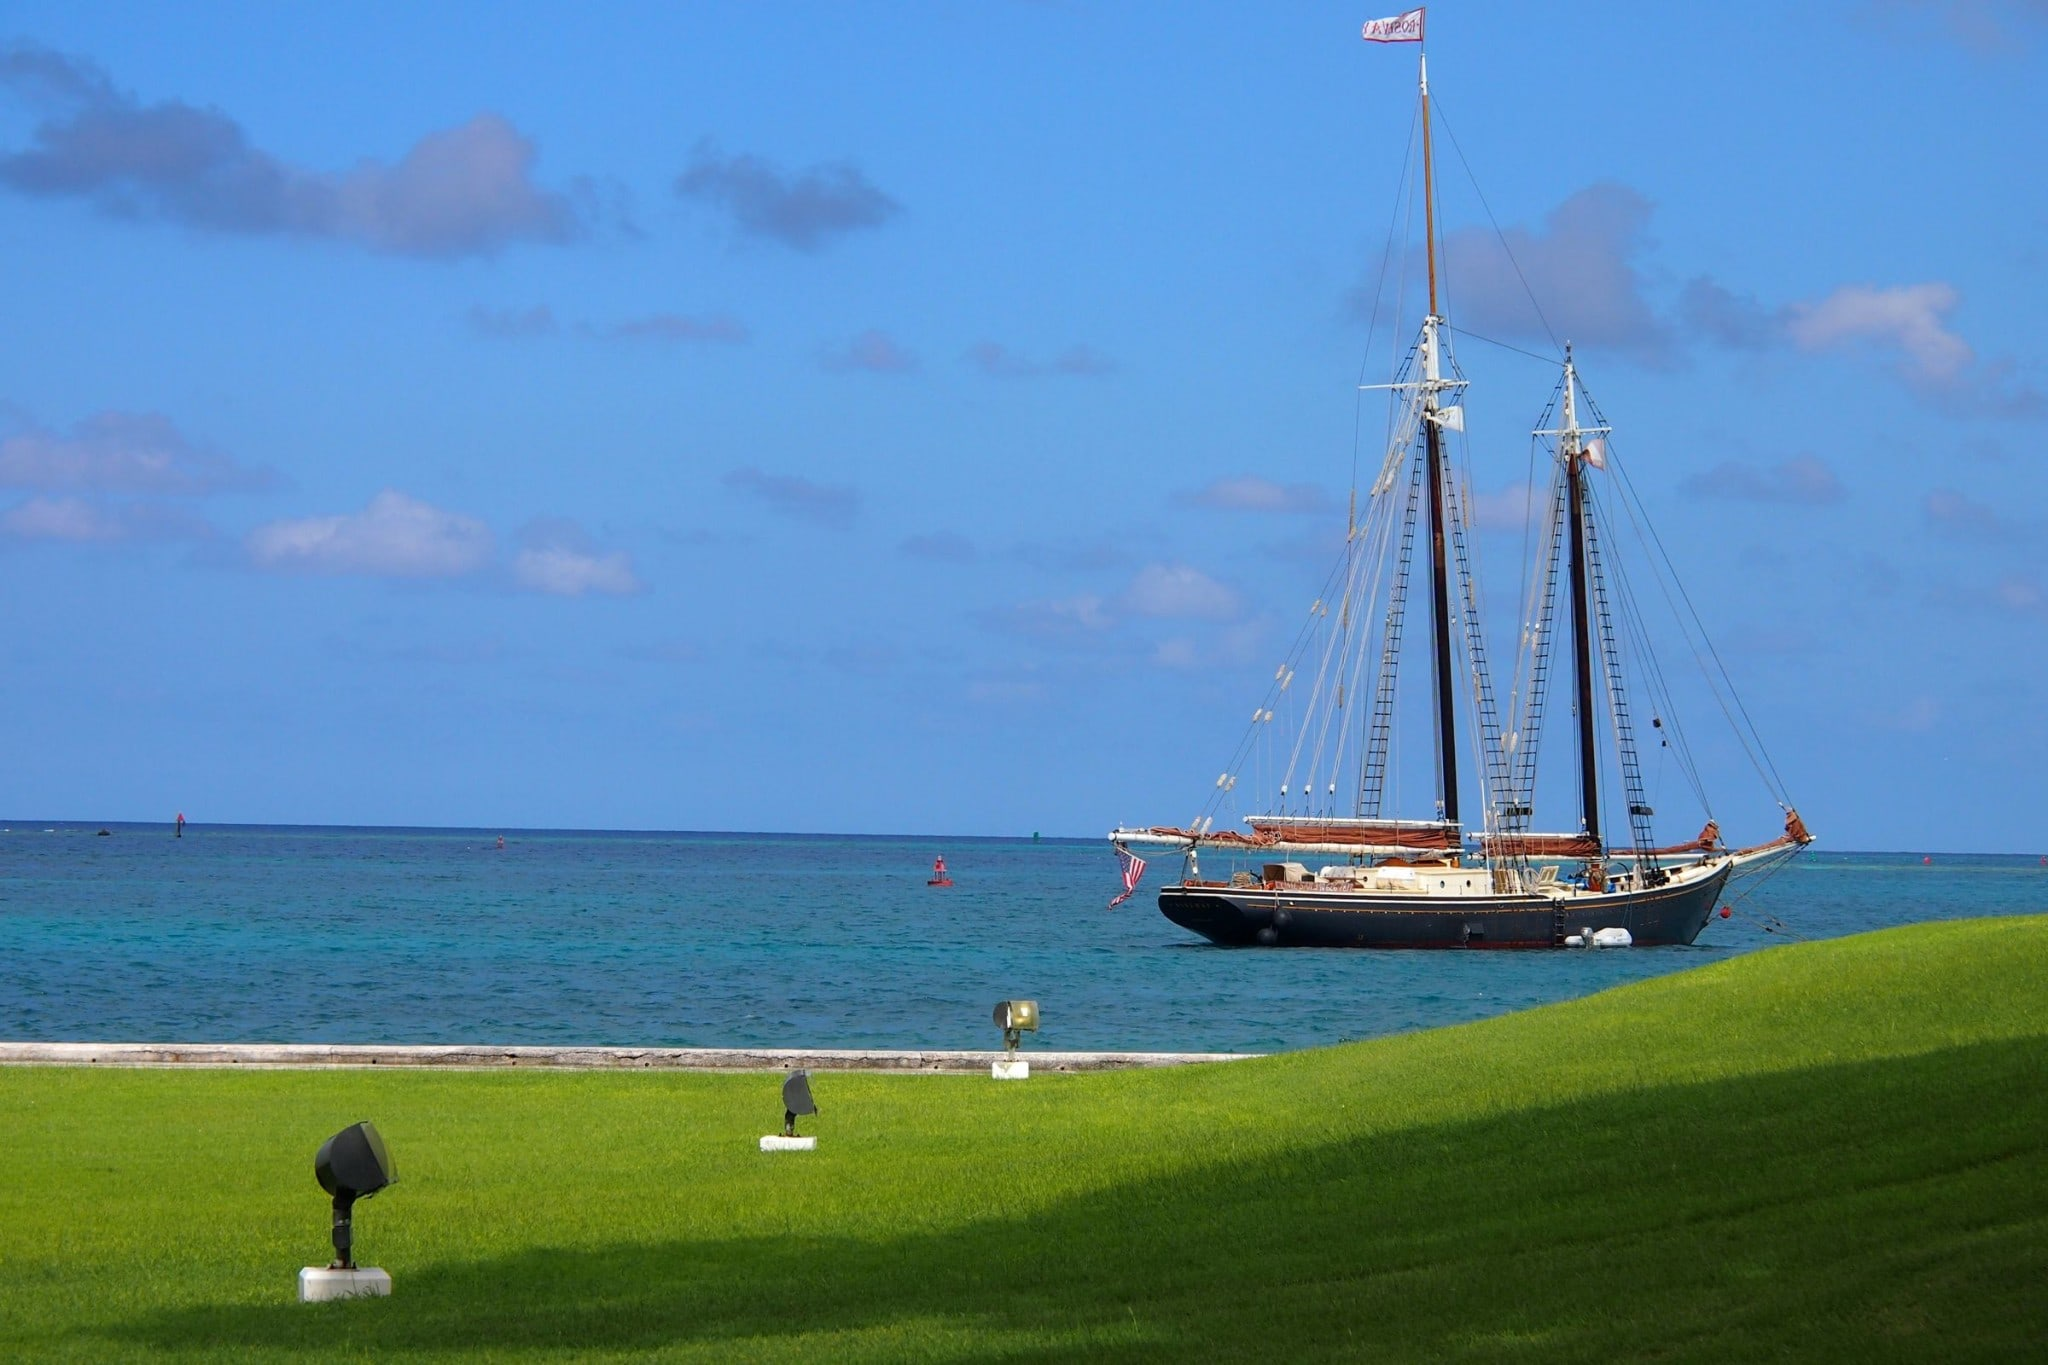 Sail Through New England's Maritime History in St. Croix Aboard The S/V Roseway